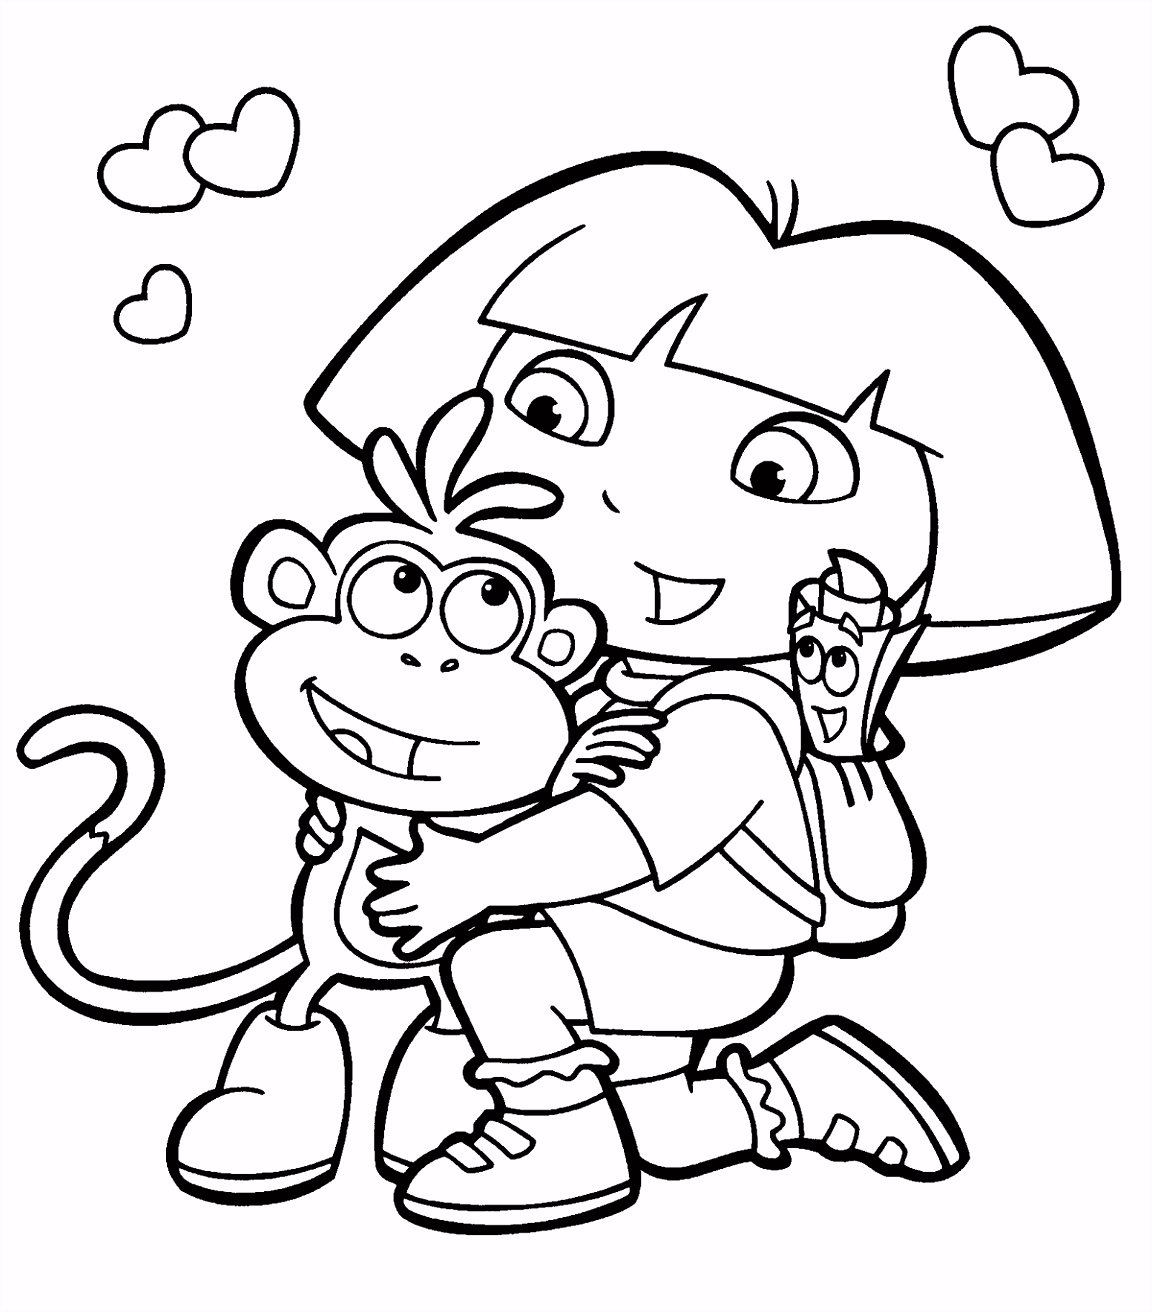 Dora And Boots Coloring Pages Dora Coloring Lots of Dora